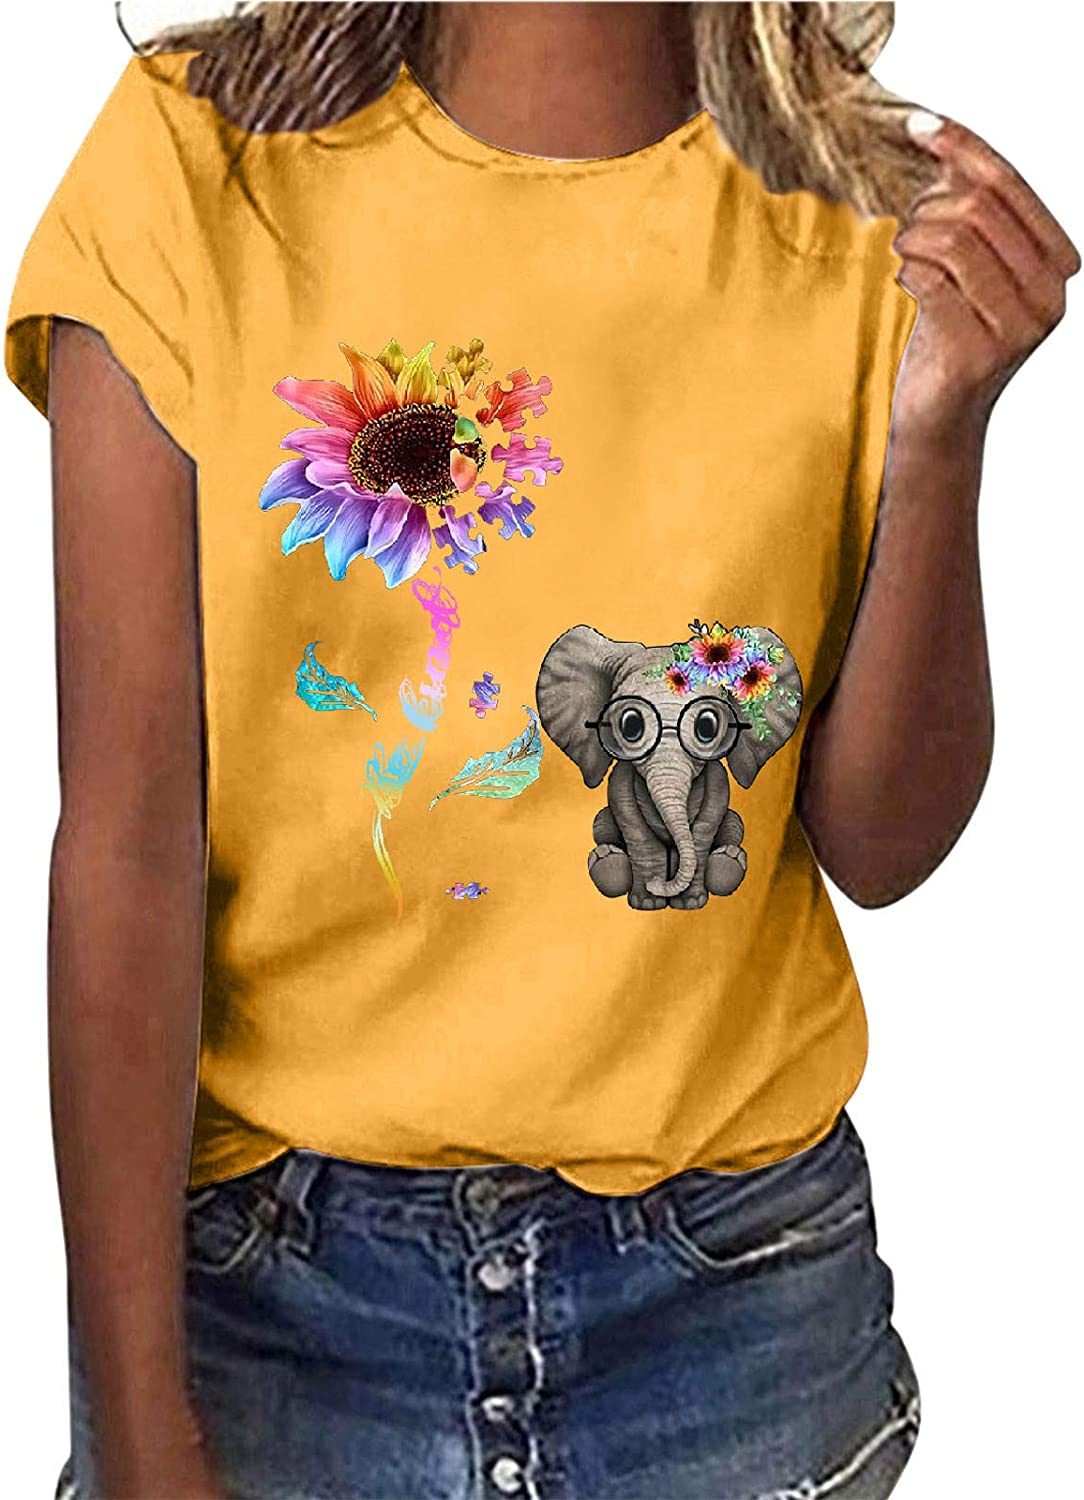 BEUU Summer Tops for Women, 2021 Womens Blouses Sexy Lips Sunflower Tops Casual T-Shirts Fashion Tunics Graphic Tees